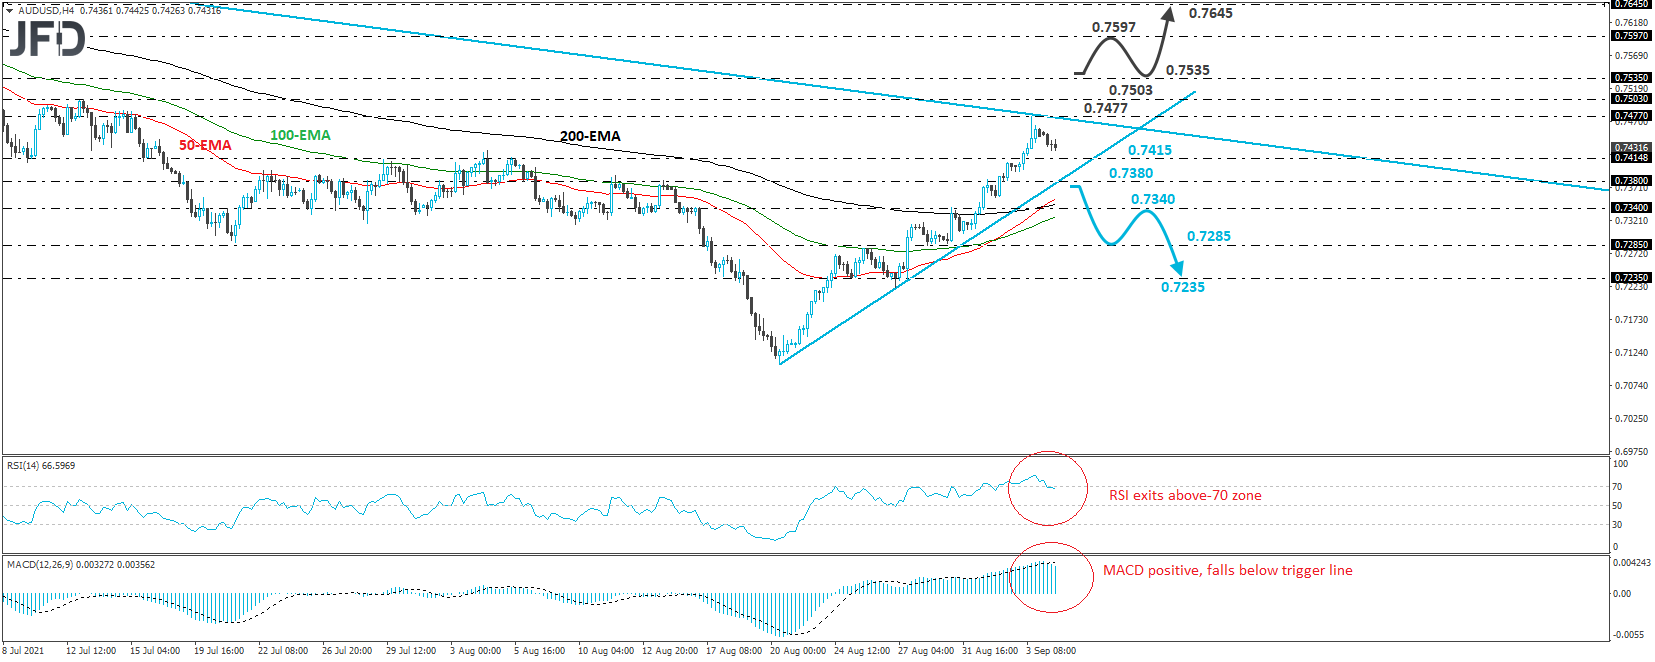 AUD/USD Hits A Downside Resistance Line